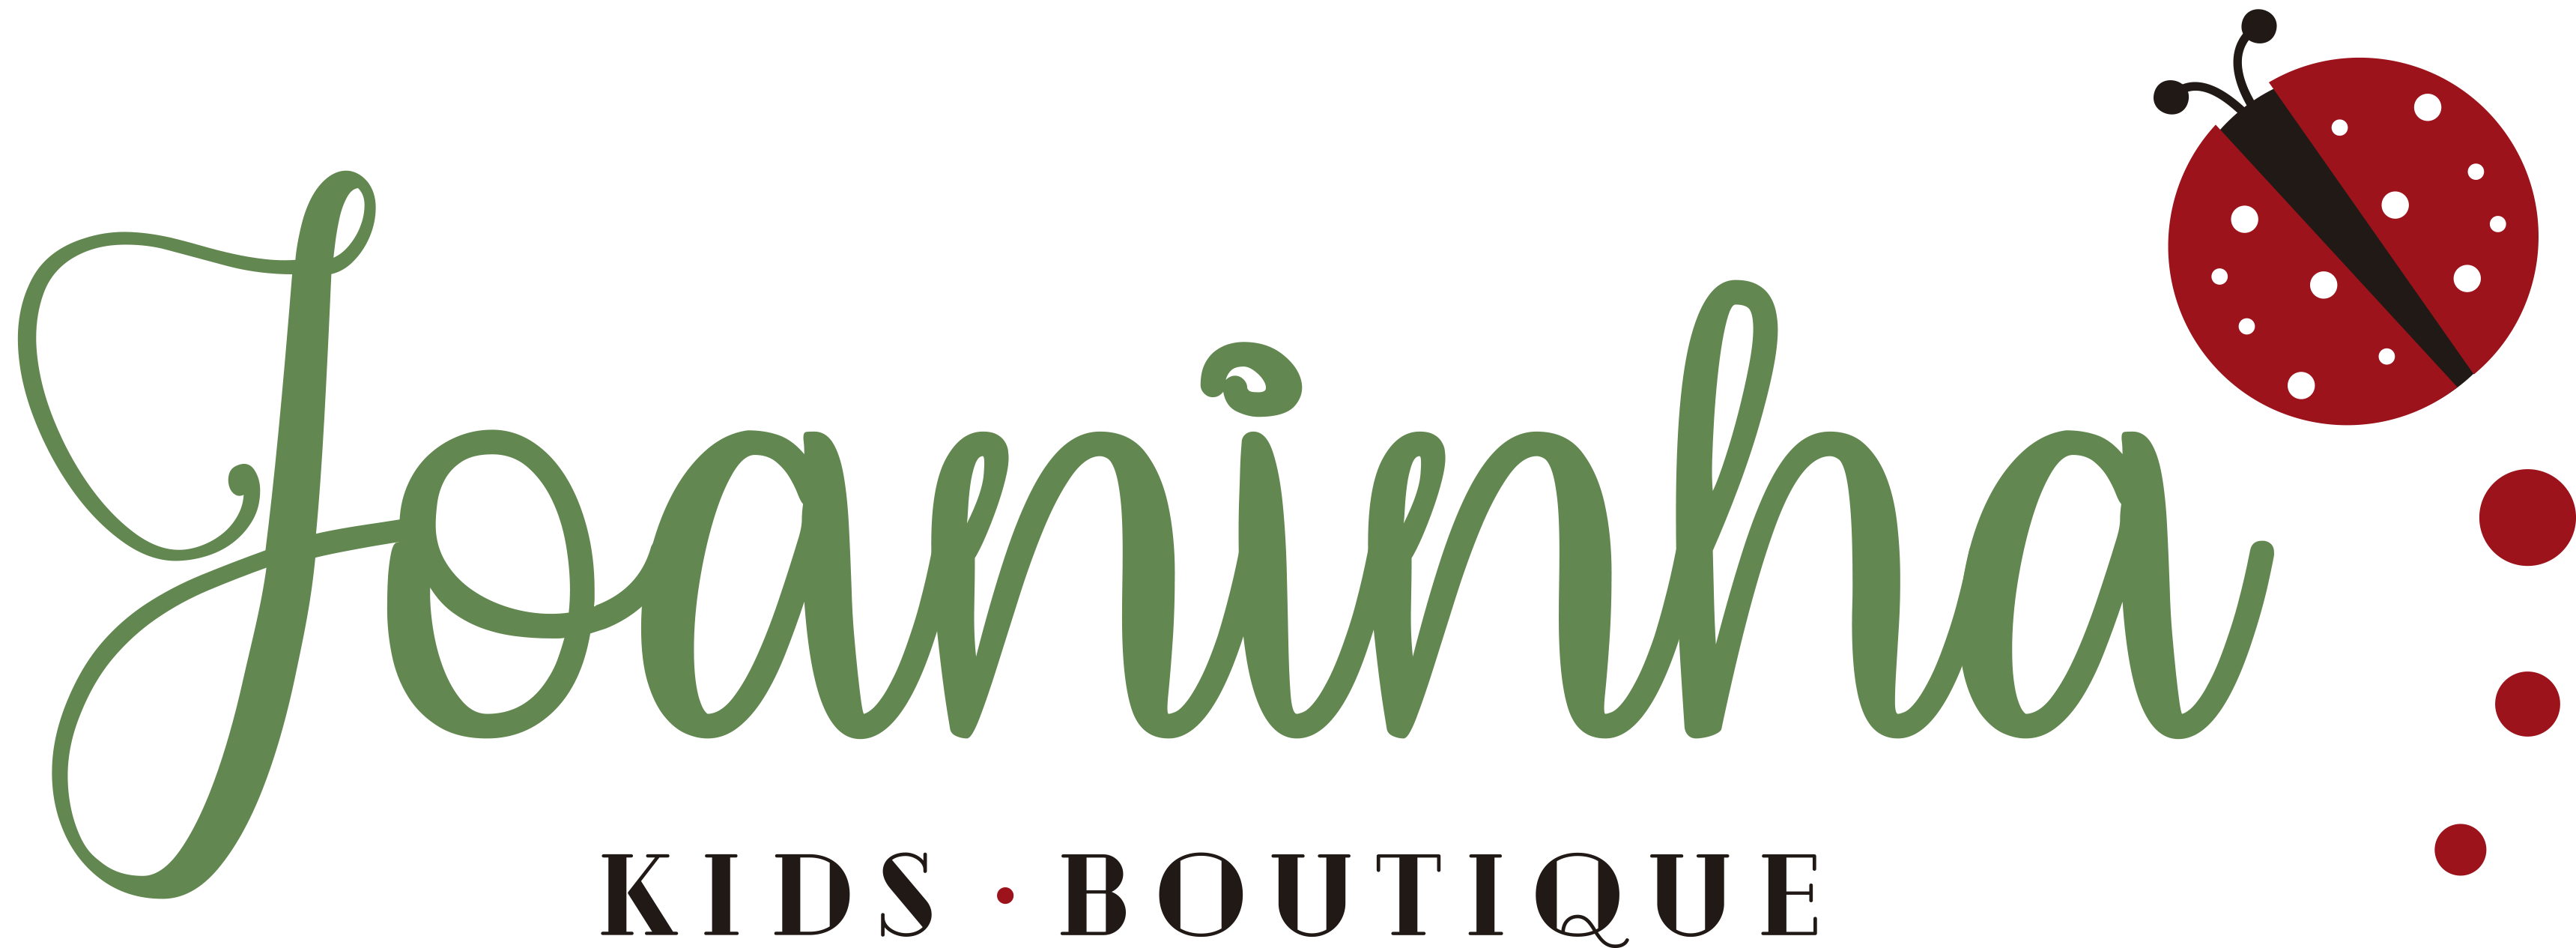 Joaninha Kids Boutique